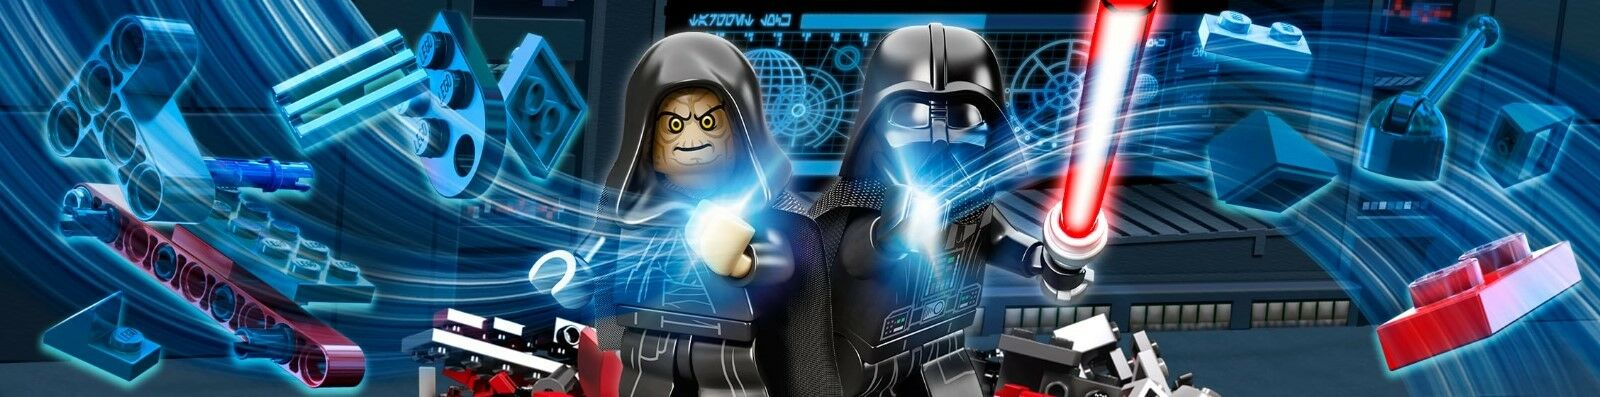 GENUINE LEGO SETS STAR WARS VARIOUS CHOOSE YOUR OWN